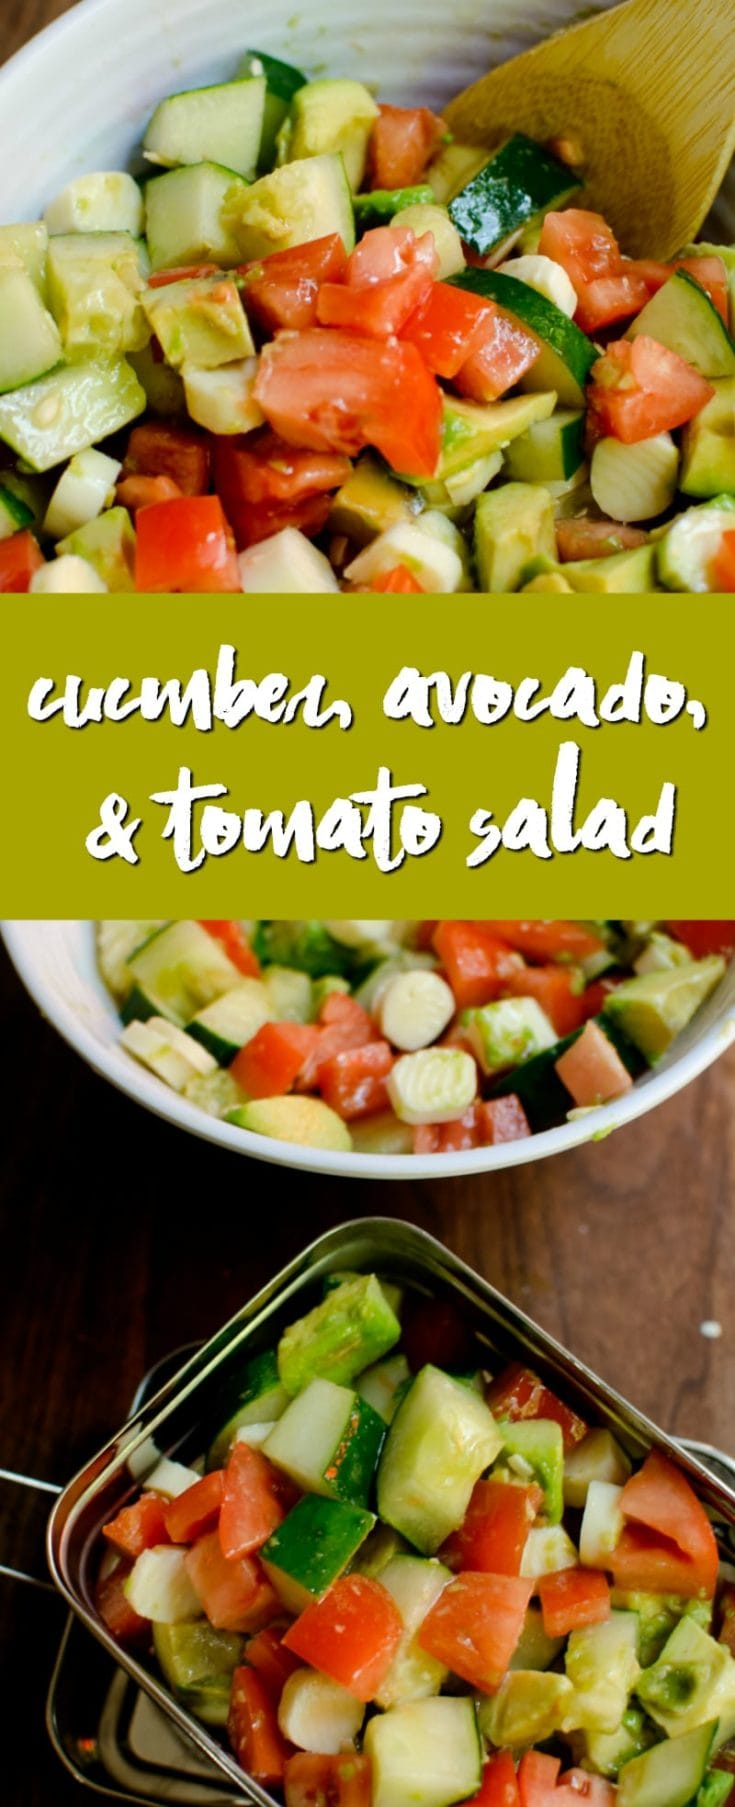 Simple Lunch Idea for Back to School: Cucumber, Avocado & Tomato Salad